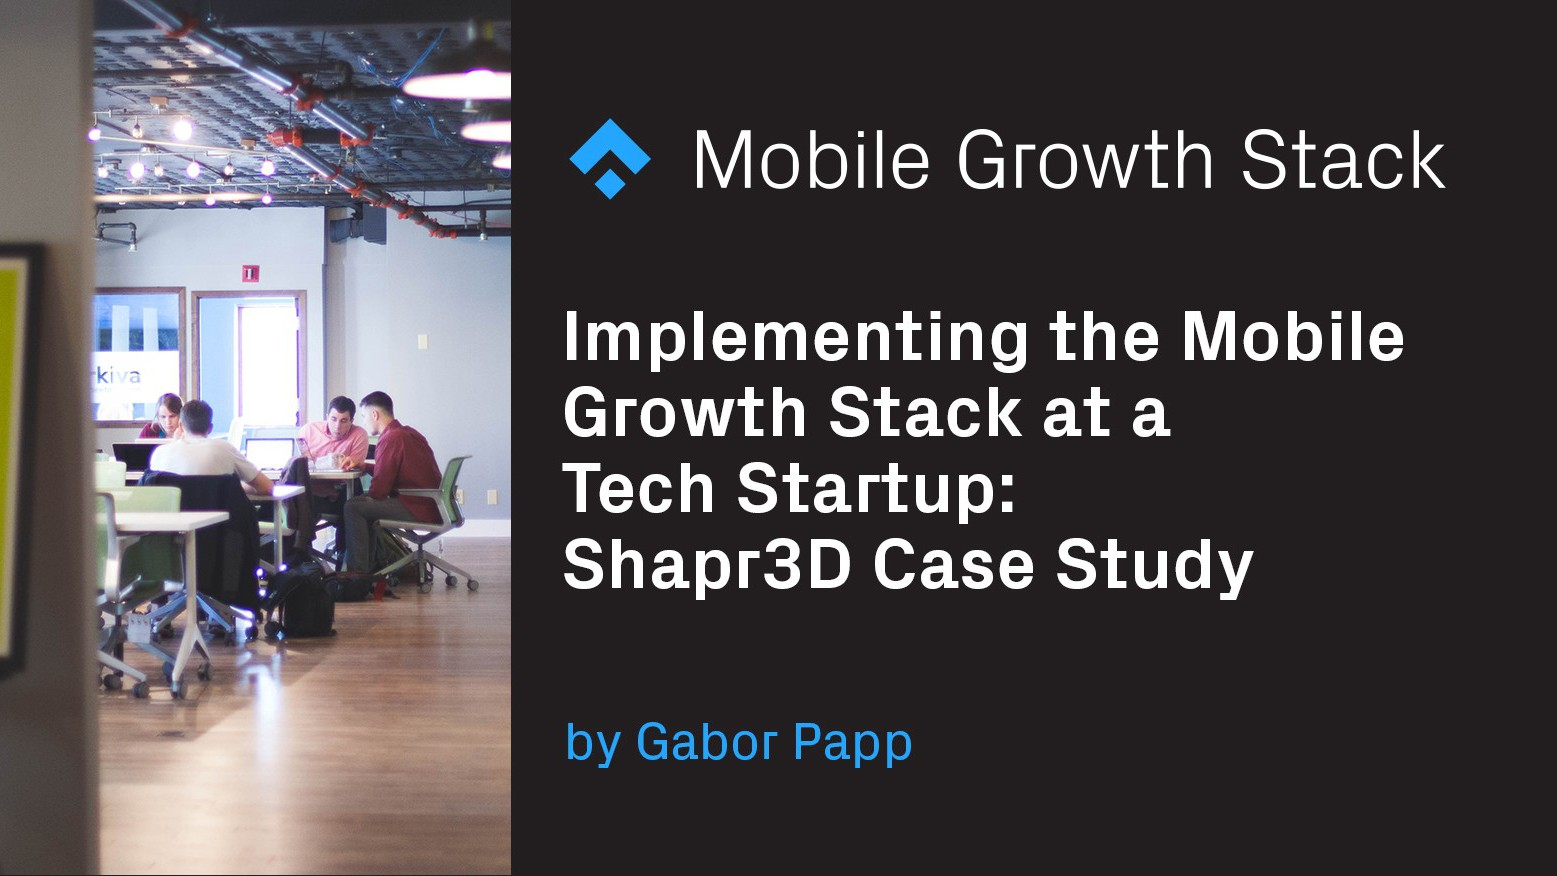 Implementing the Mobile Growth Stack at a Tech Startup- Shapr3D Case Study